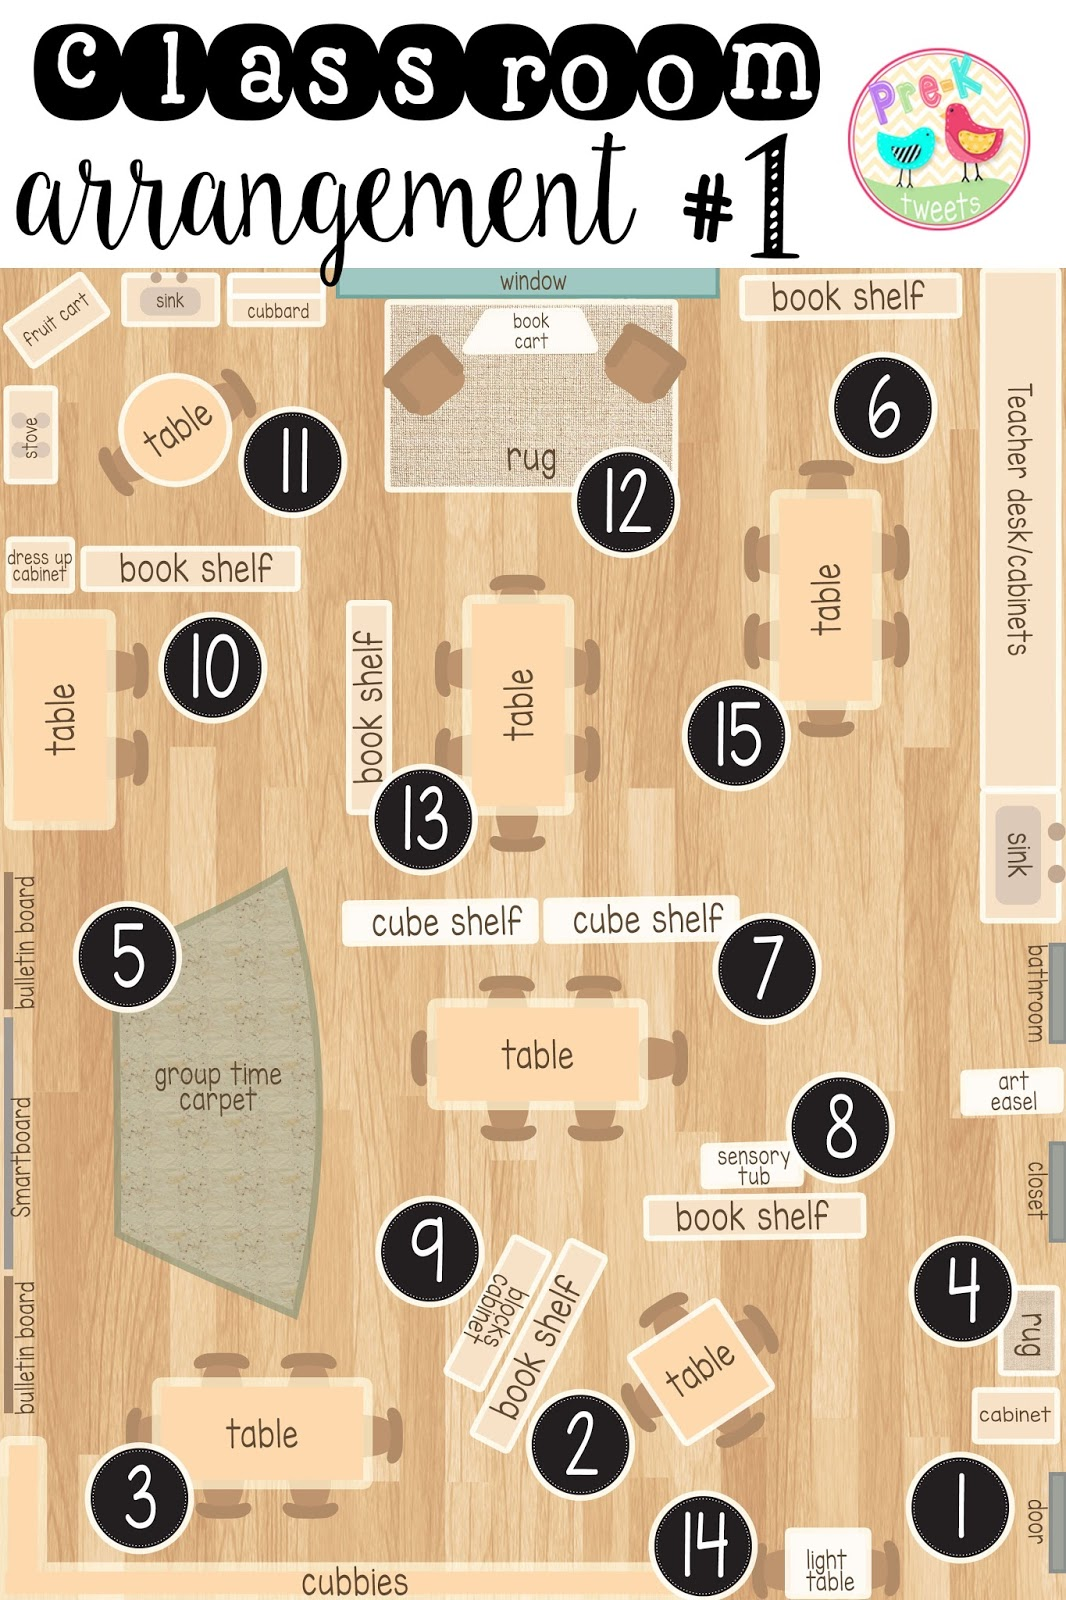 small resolution of where should you put your book shelves your group time carpet your storage